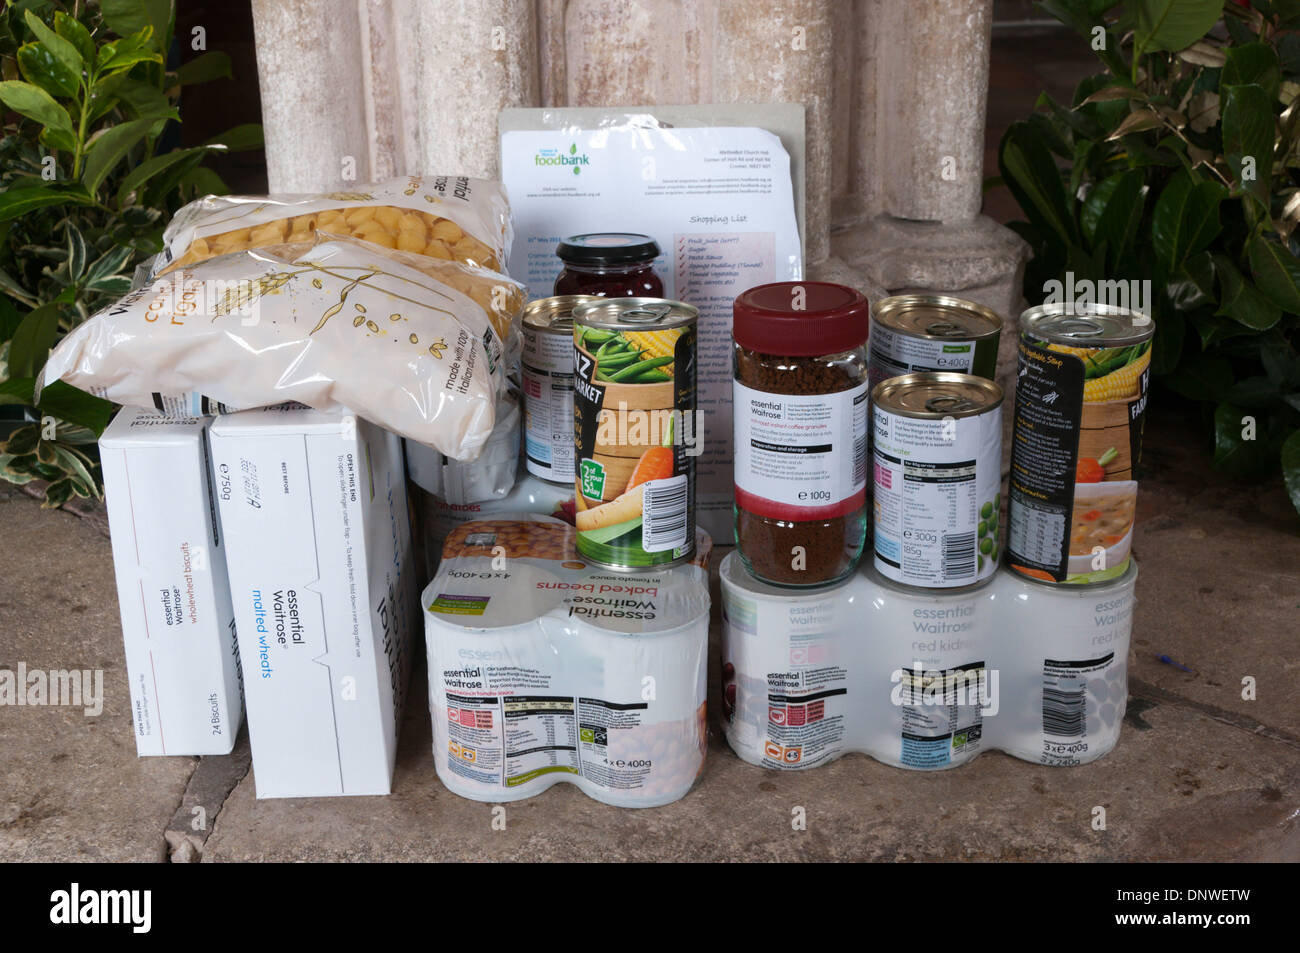 Food left on font of All Saints church at Upper Sheringham as donations to the Cromer & District Food Bank. - Stock Image